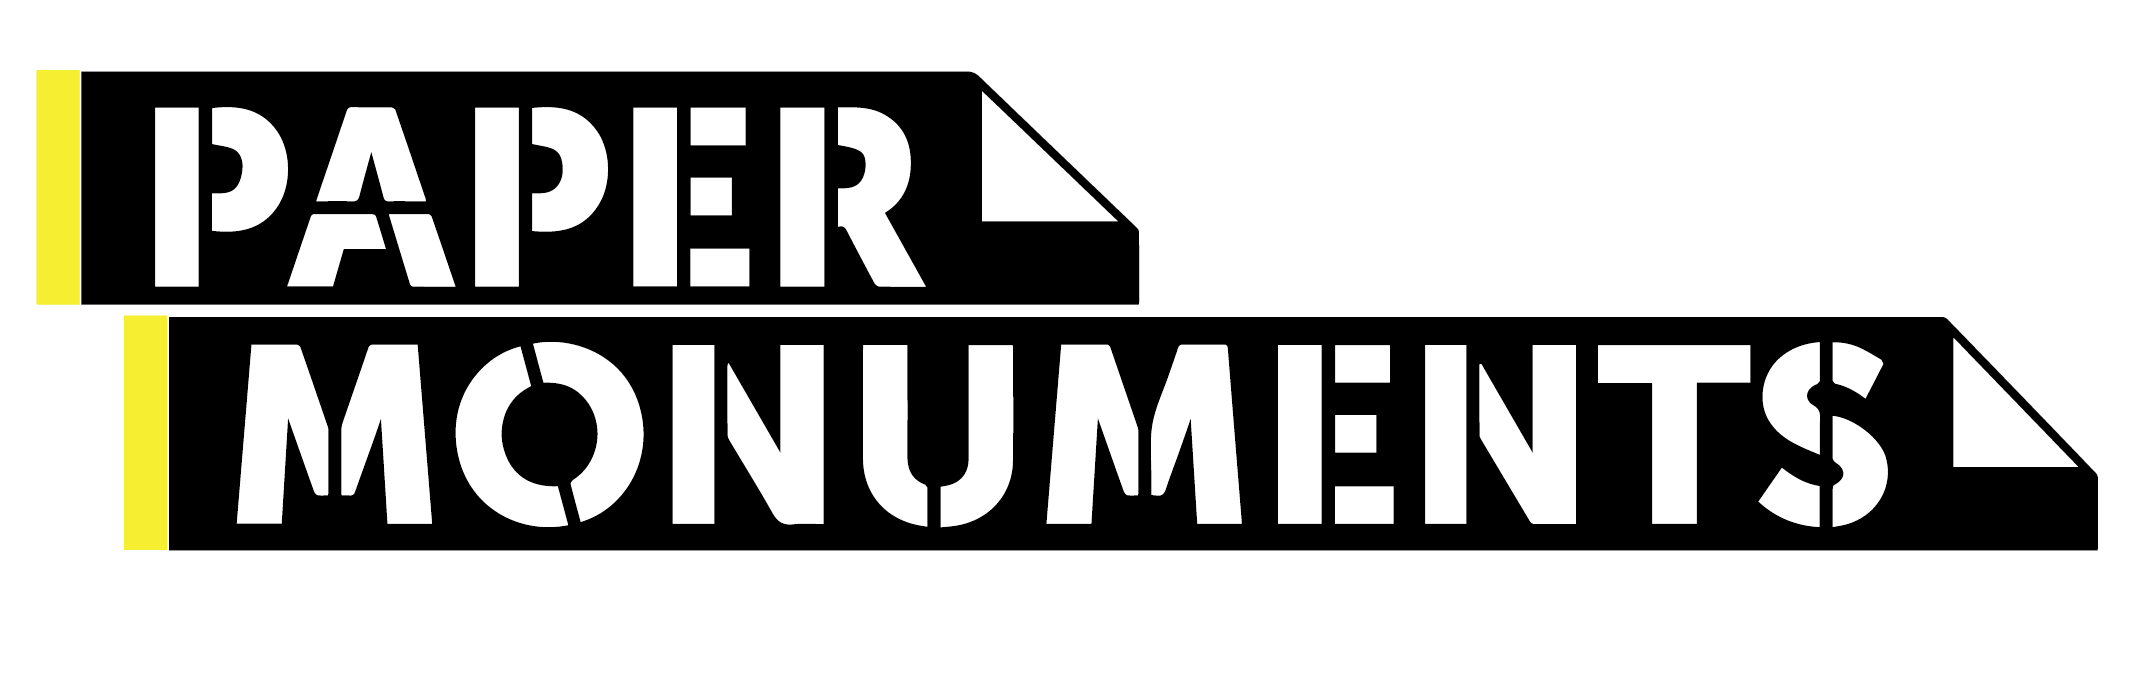 PaperMonuments01-02 (1).png